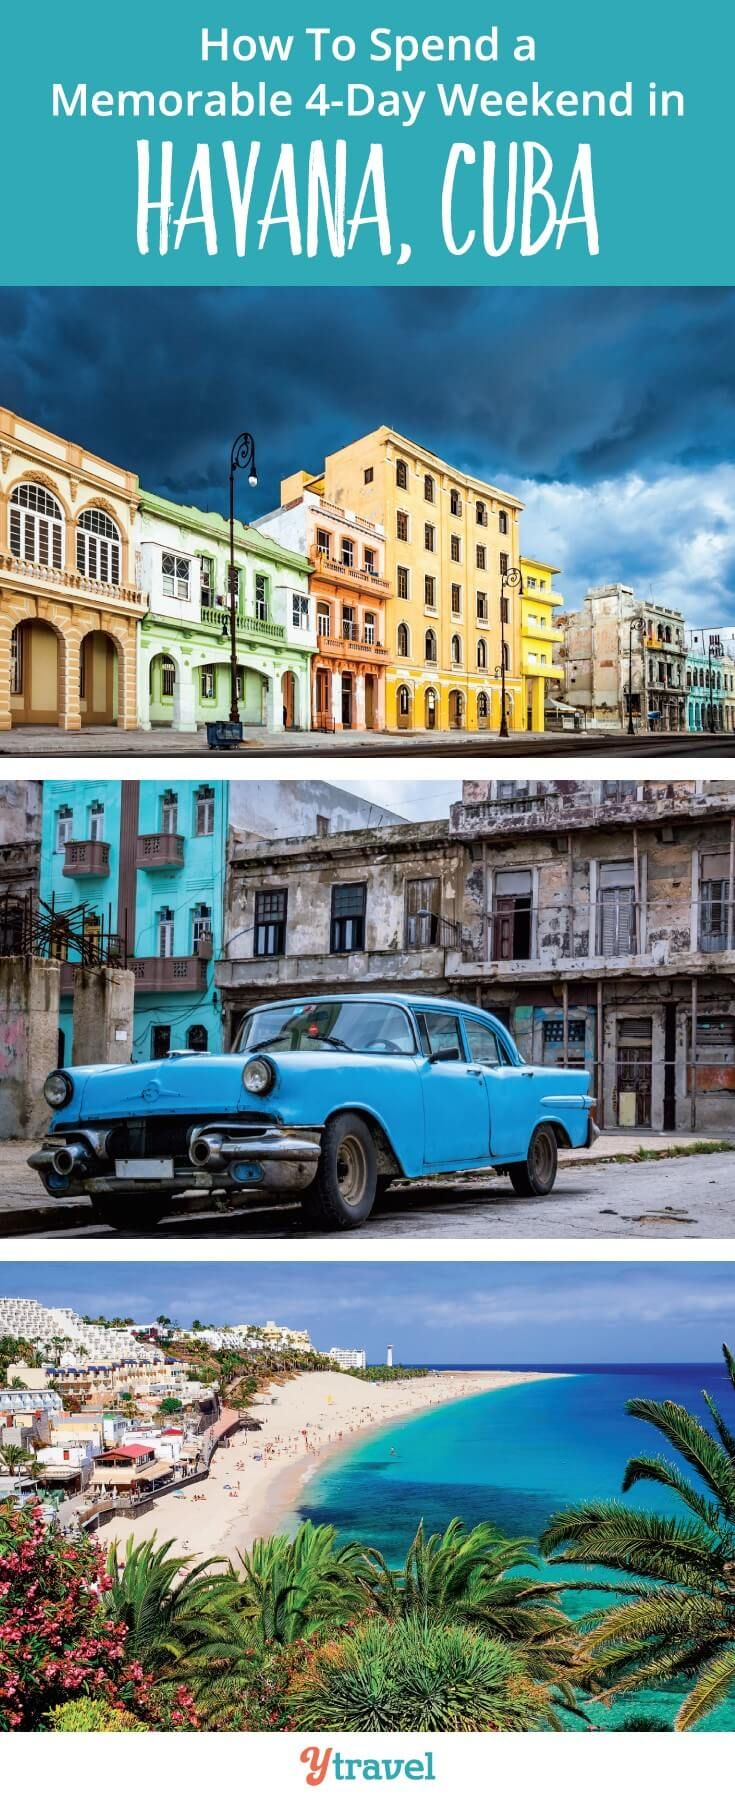 5dc33db21866e4c428e972ae16e9d790 - How Do You Get To Cuba From The Usa